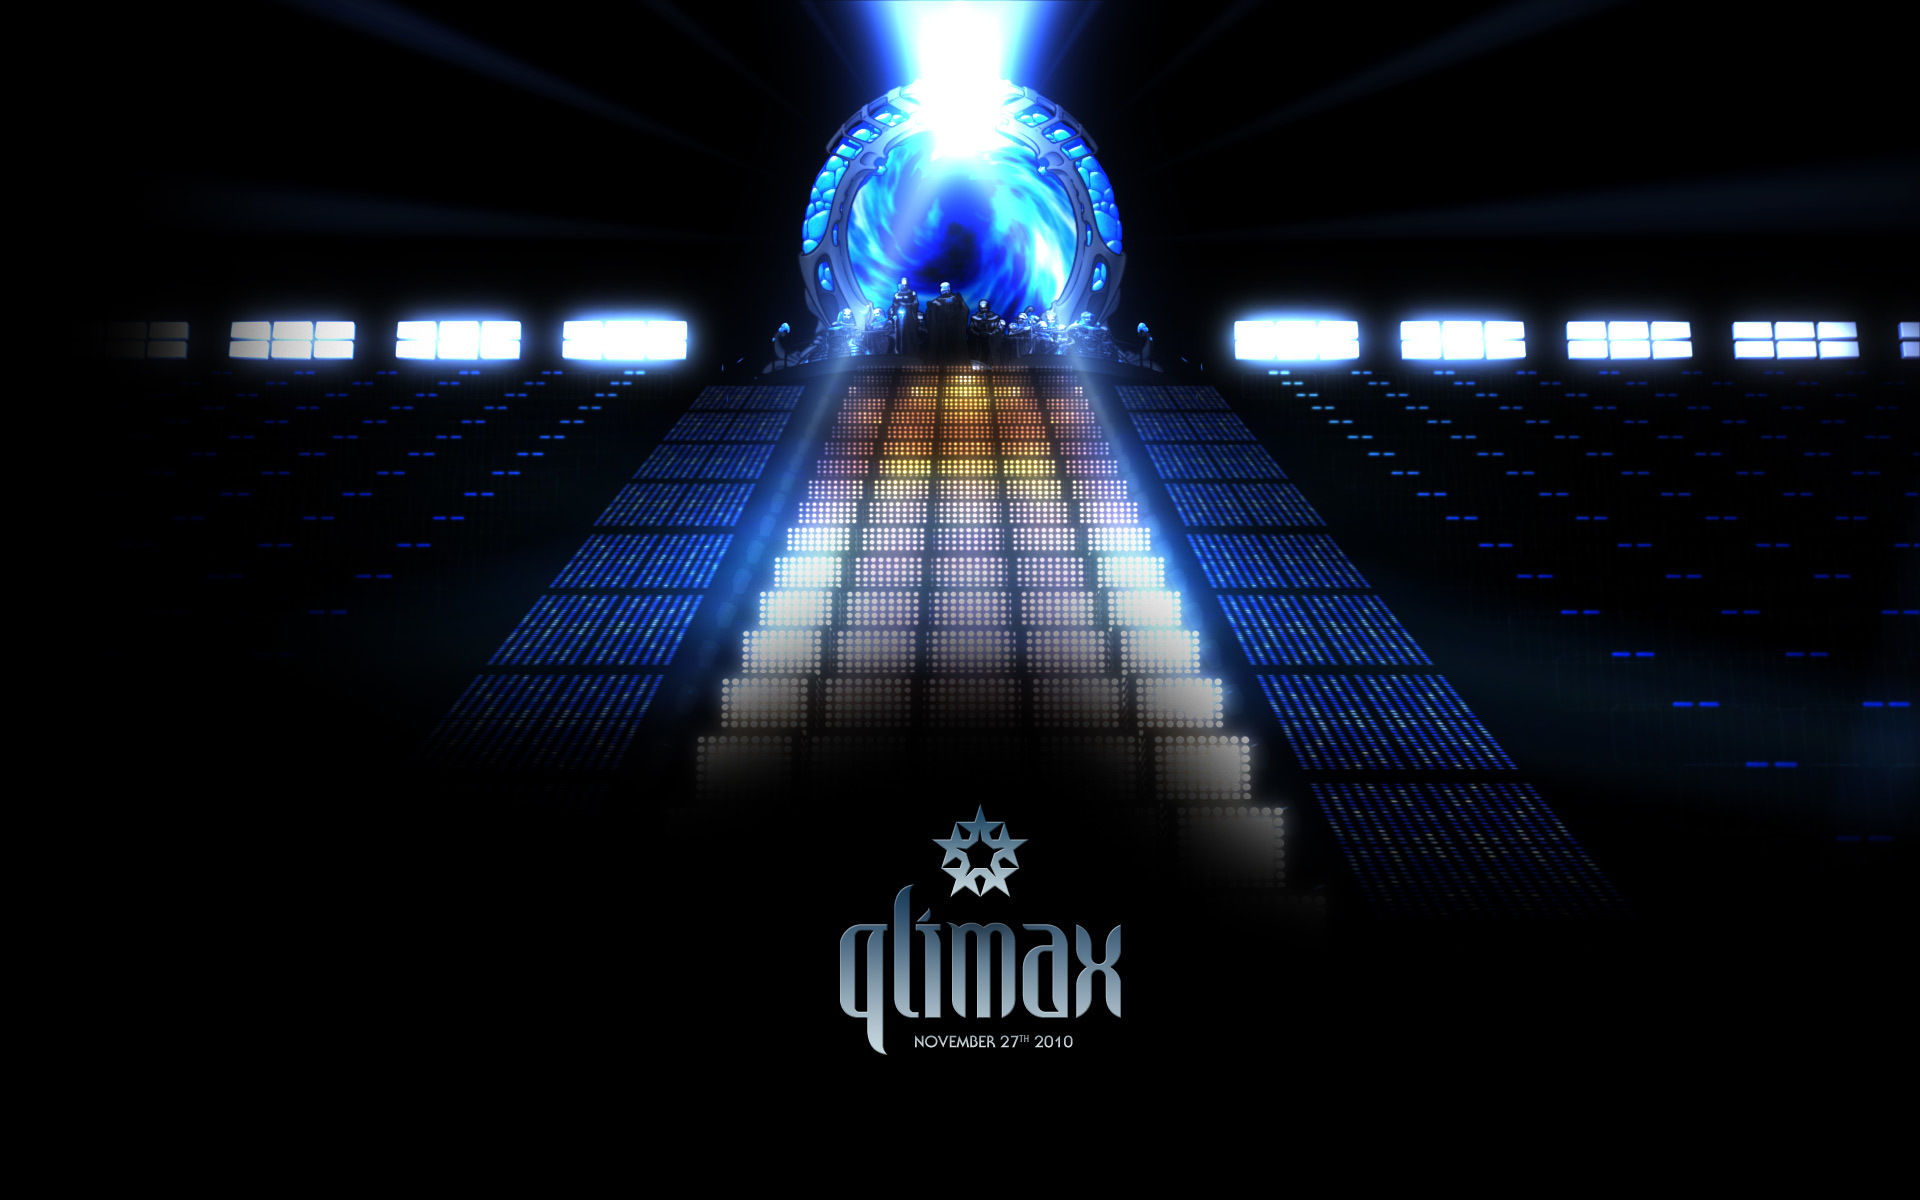 qlimax hardstyle Q-Dance HD Wallpaper